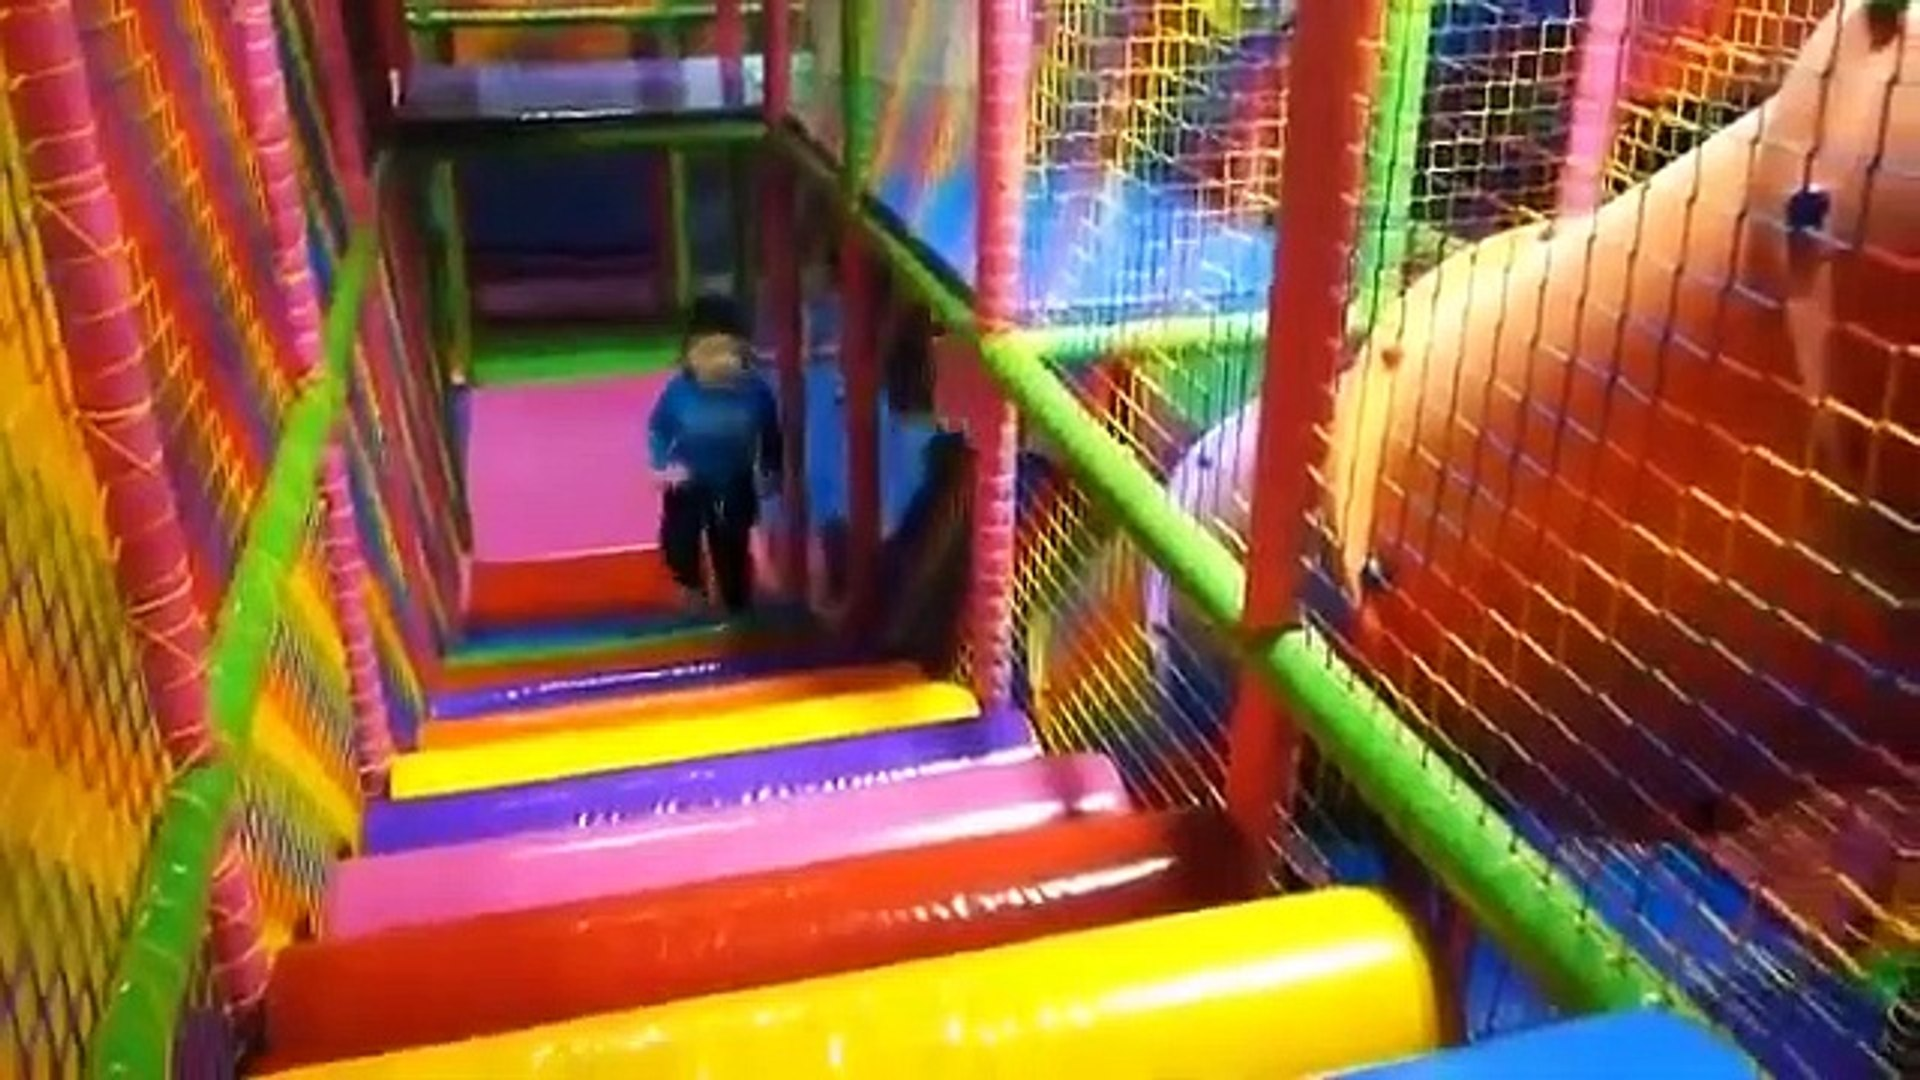 Playing Indoor Playground Kids Fun with Balls Toys Play cente for Kids Playr